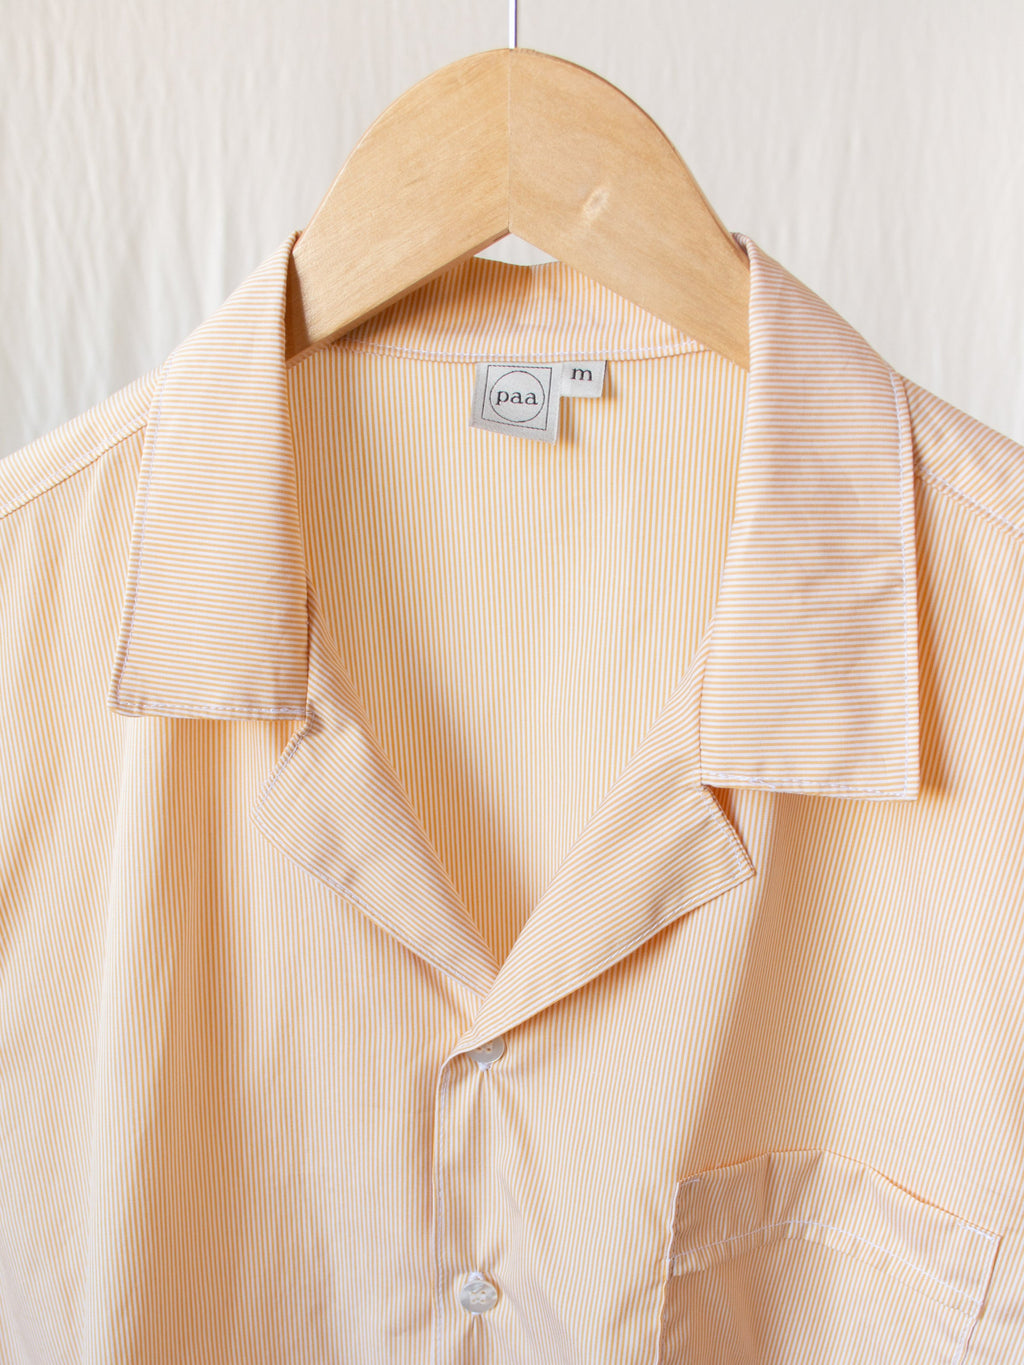 Namu Shop - paa SS Shirt Two - Microstripe Cotton Poplin